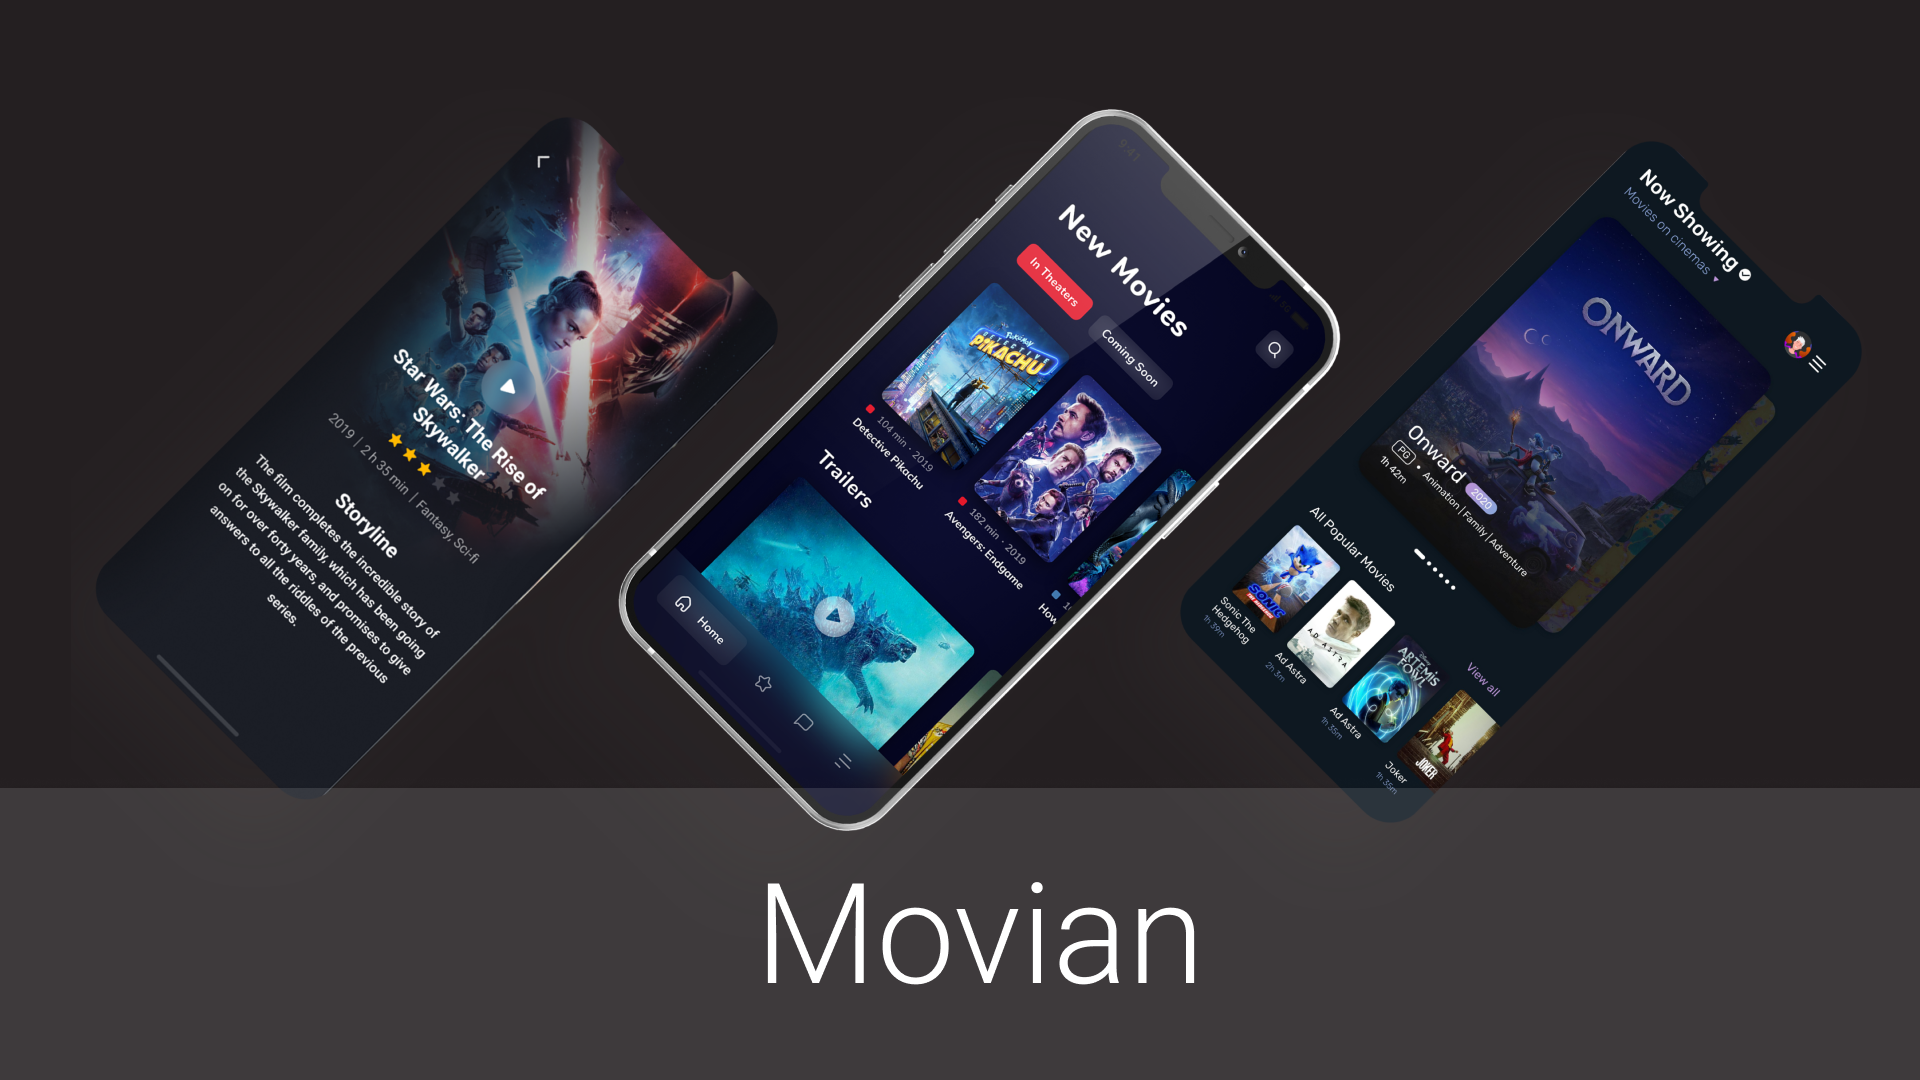 Movian -movie streaming app collection for iOS